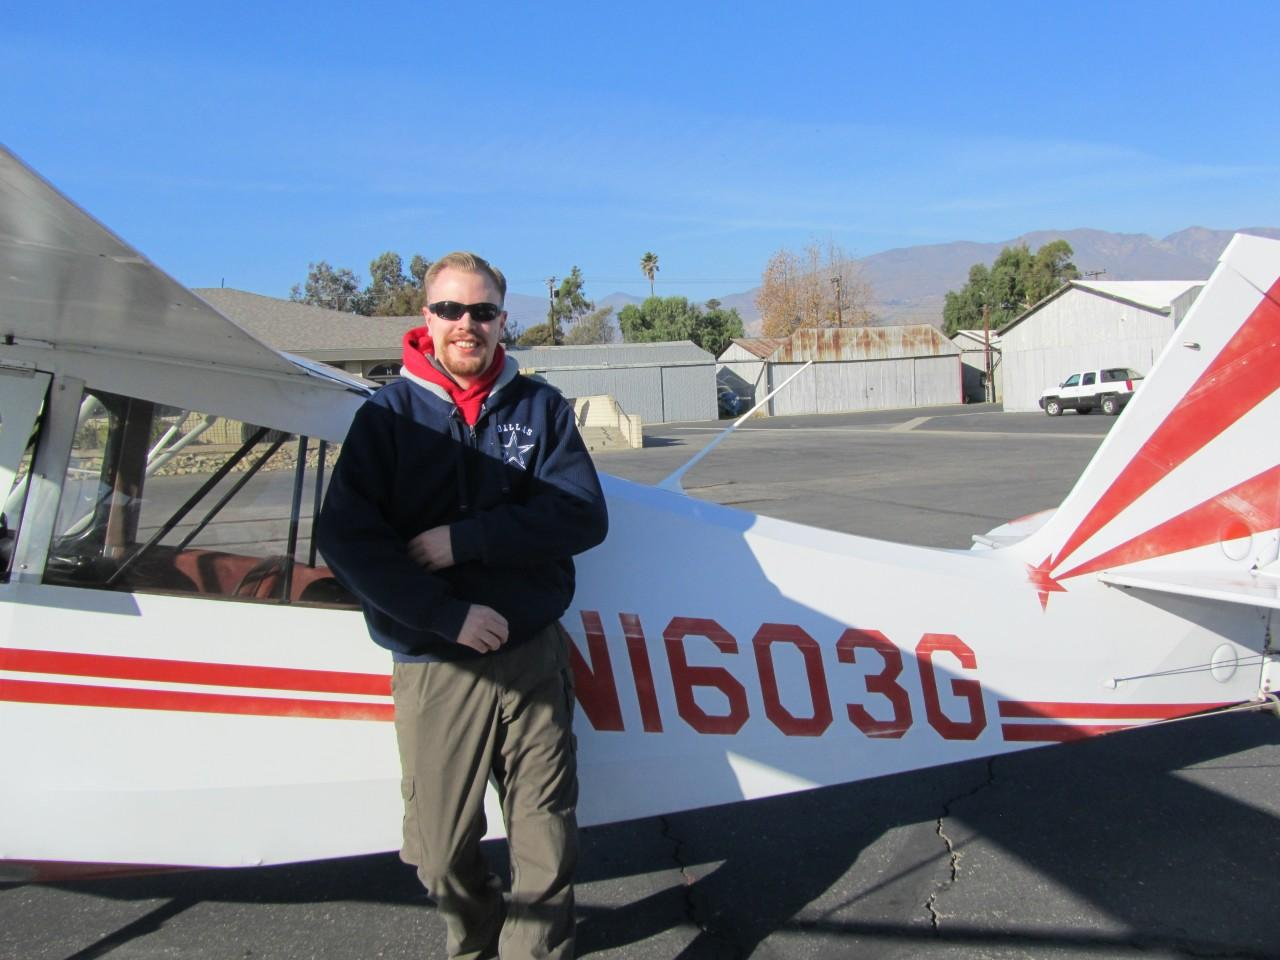 Tailwheel Endorsement - Adam Nelson